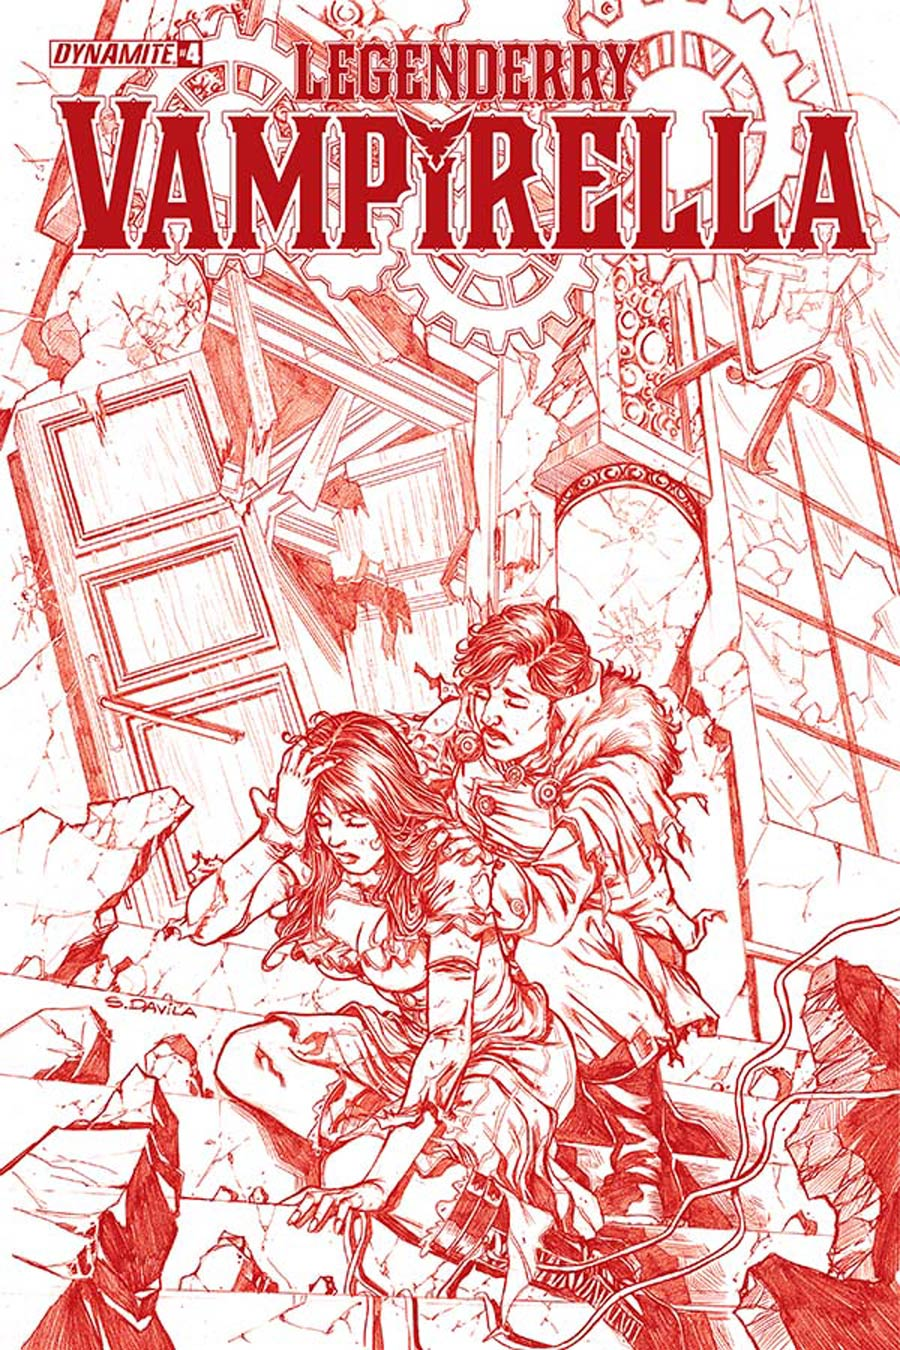 Legenderry Vampirella #4 Cover D High-End Sergio Fernandez Davila Blood Red Ultra-Limited Variant Cover (ONLY 50 COPIES IN EXISTENCE!)